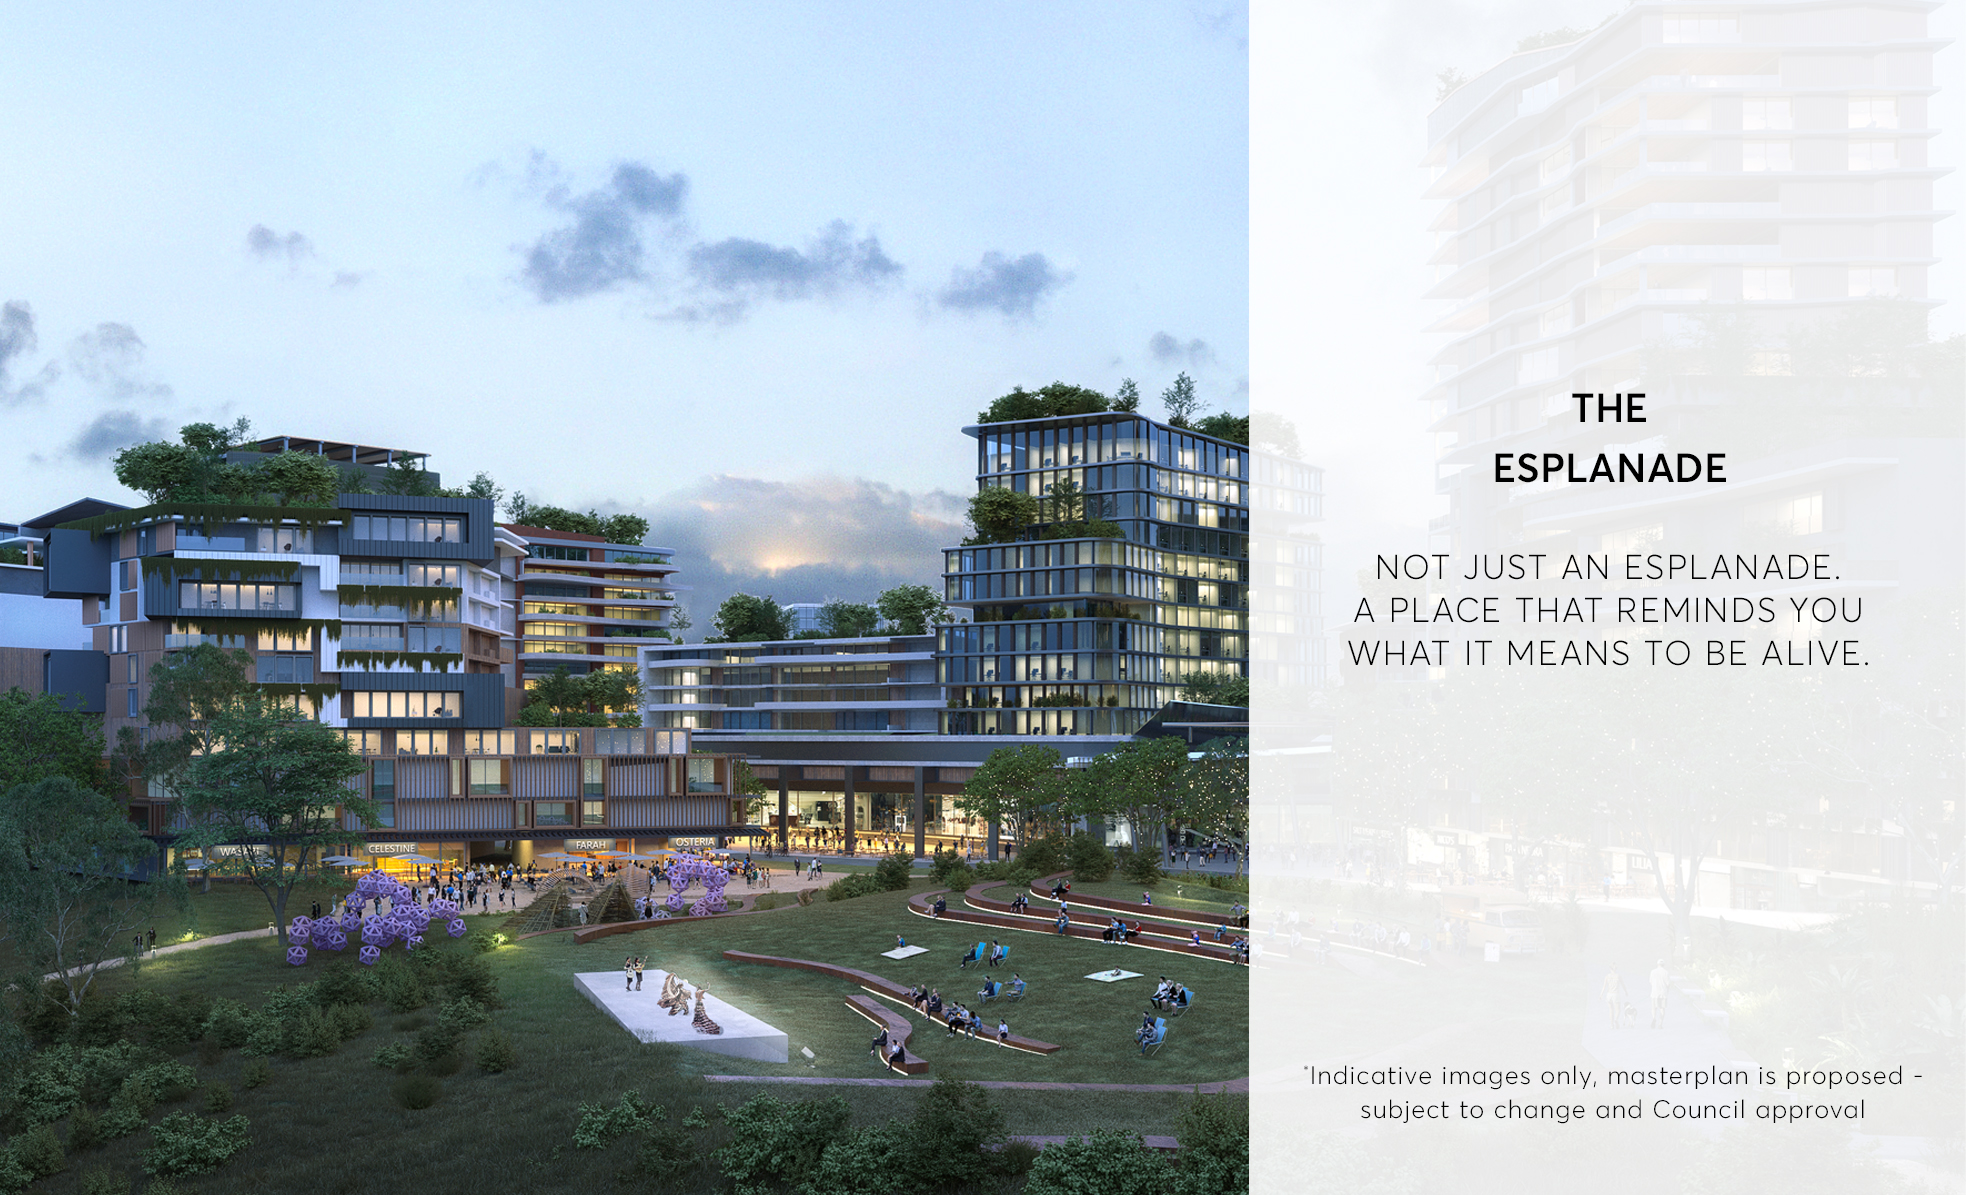 The Esplande - Ripley Town Centre - Artist Impression (subject to change and Council approval)